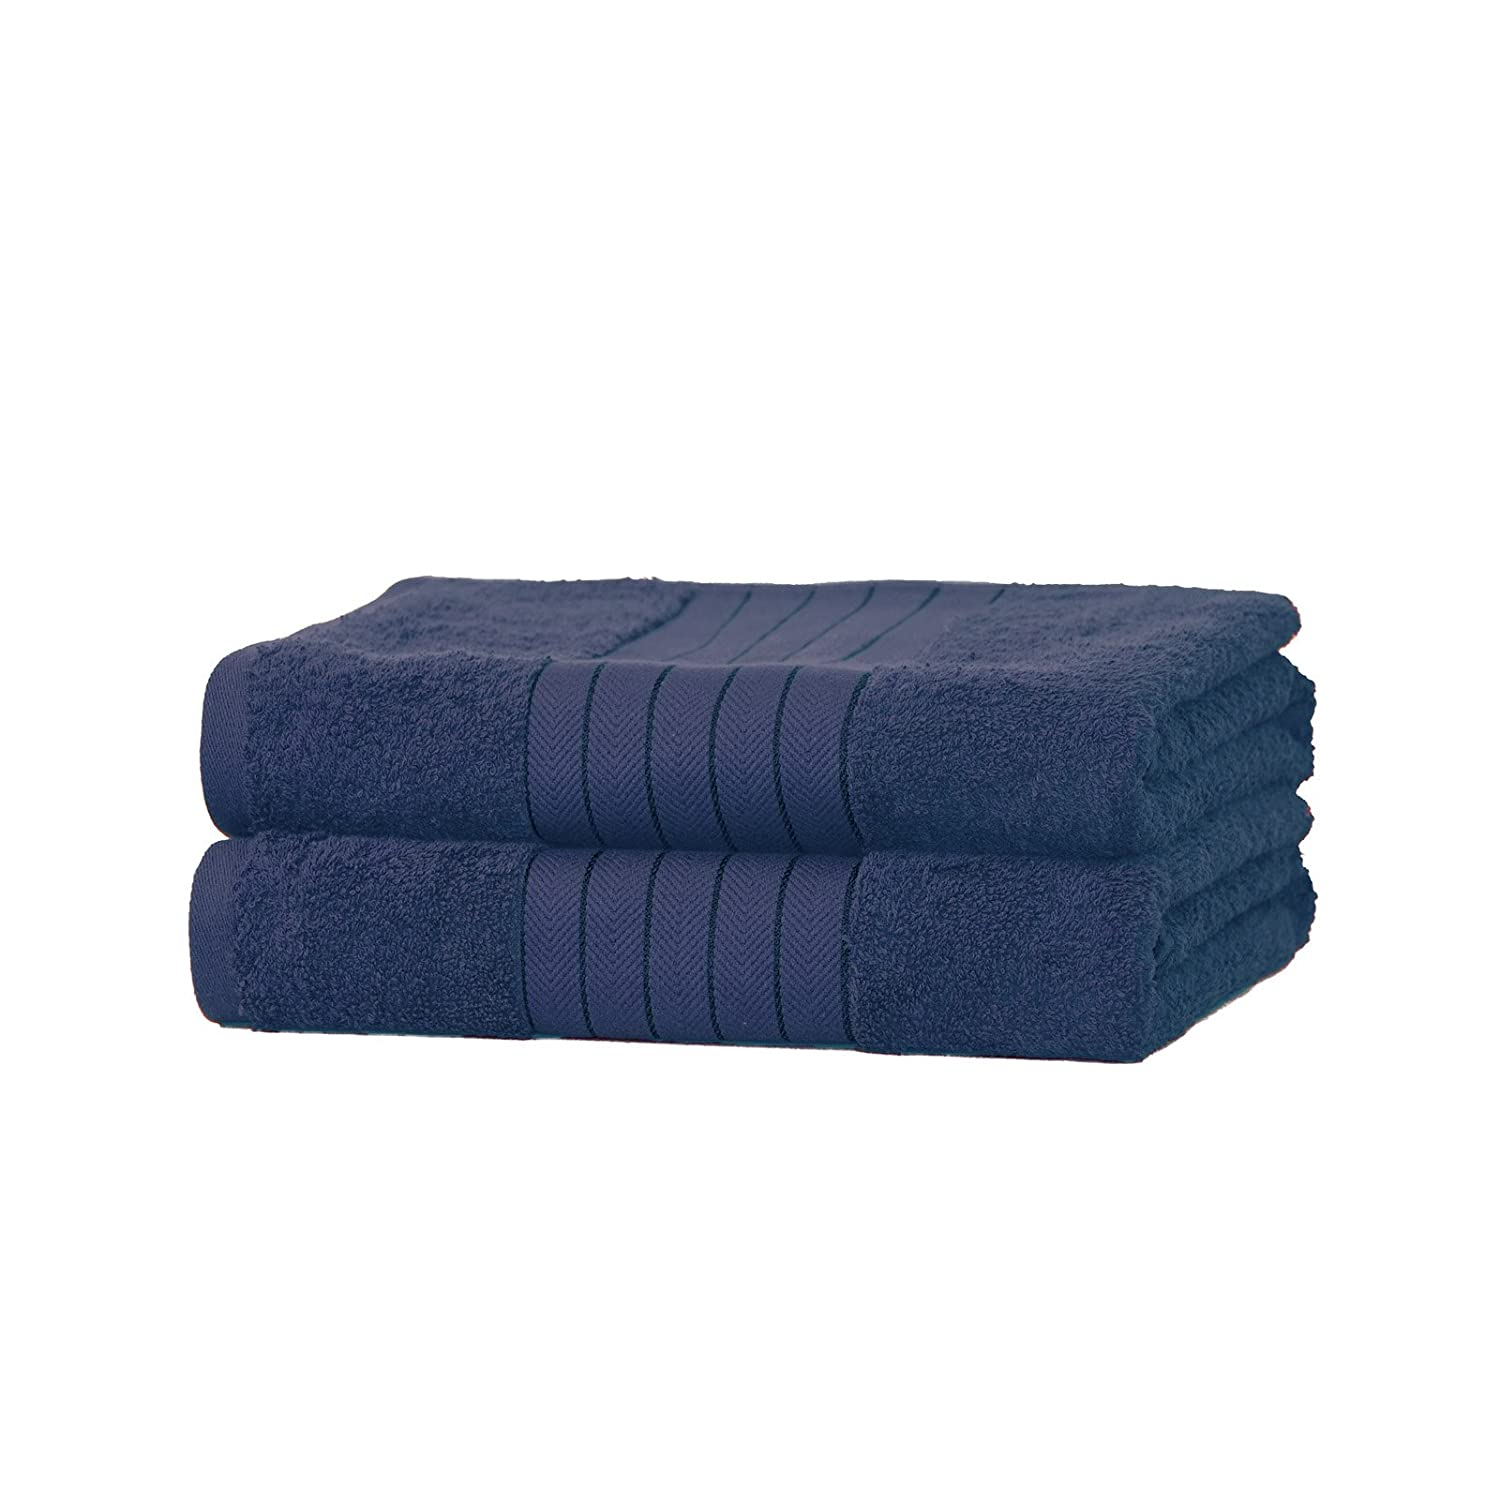 Dreamscene Luxury 100% Cotton 2 x Jumbo Bath Sheets Extra Large Towels Bale Absorbent - Navy Blue TB2NV643